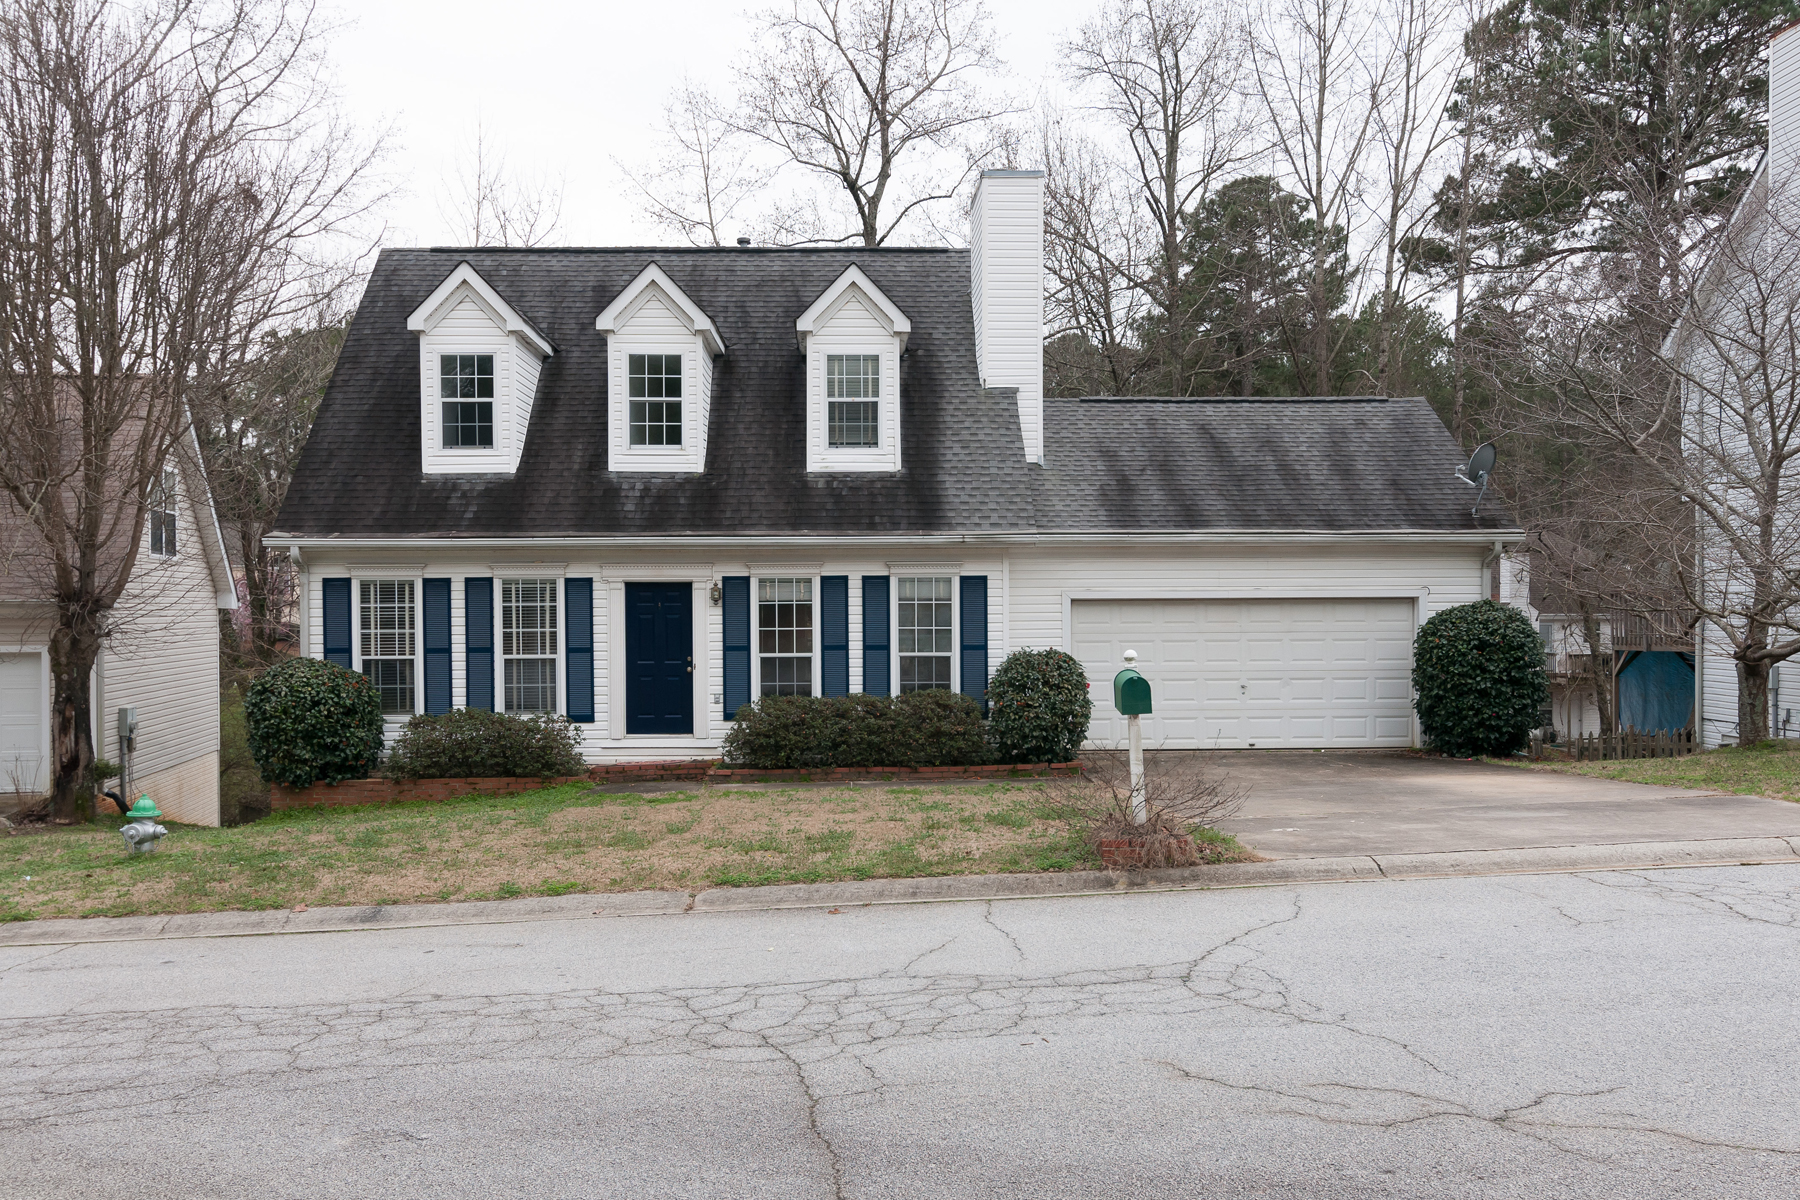 Eensgezinswoning voor Huren een t Fabulous Two Story Home With Full Finished Daylight Basement 114 Chase Court Peachtree City, Georgië 30269 Verenigde Staten